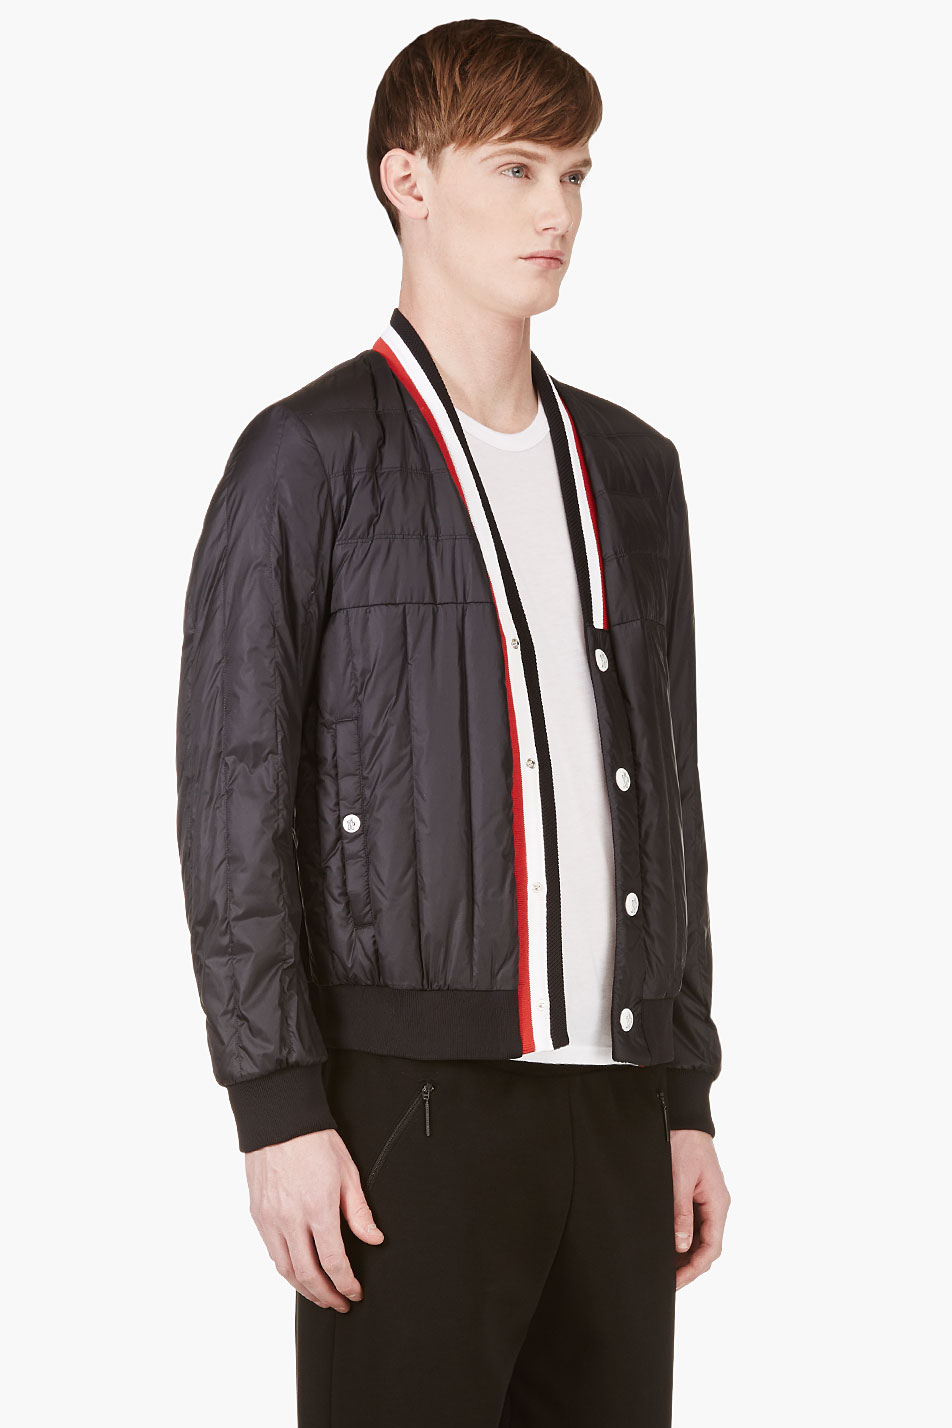 Quilted V-Neck Jacket tricolor luxury menswear 2